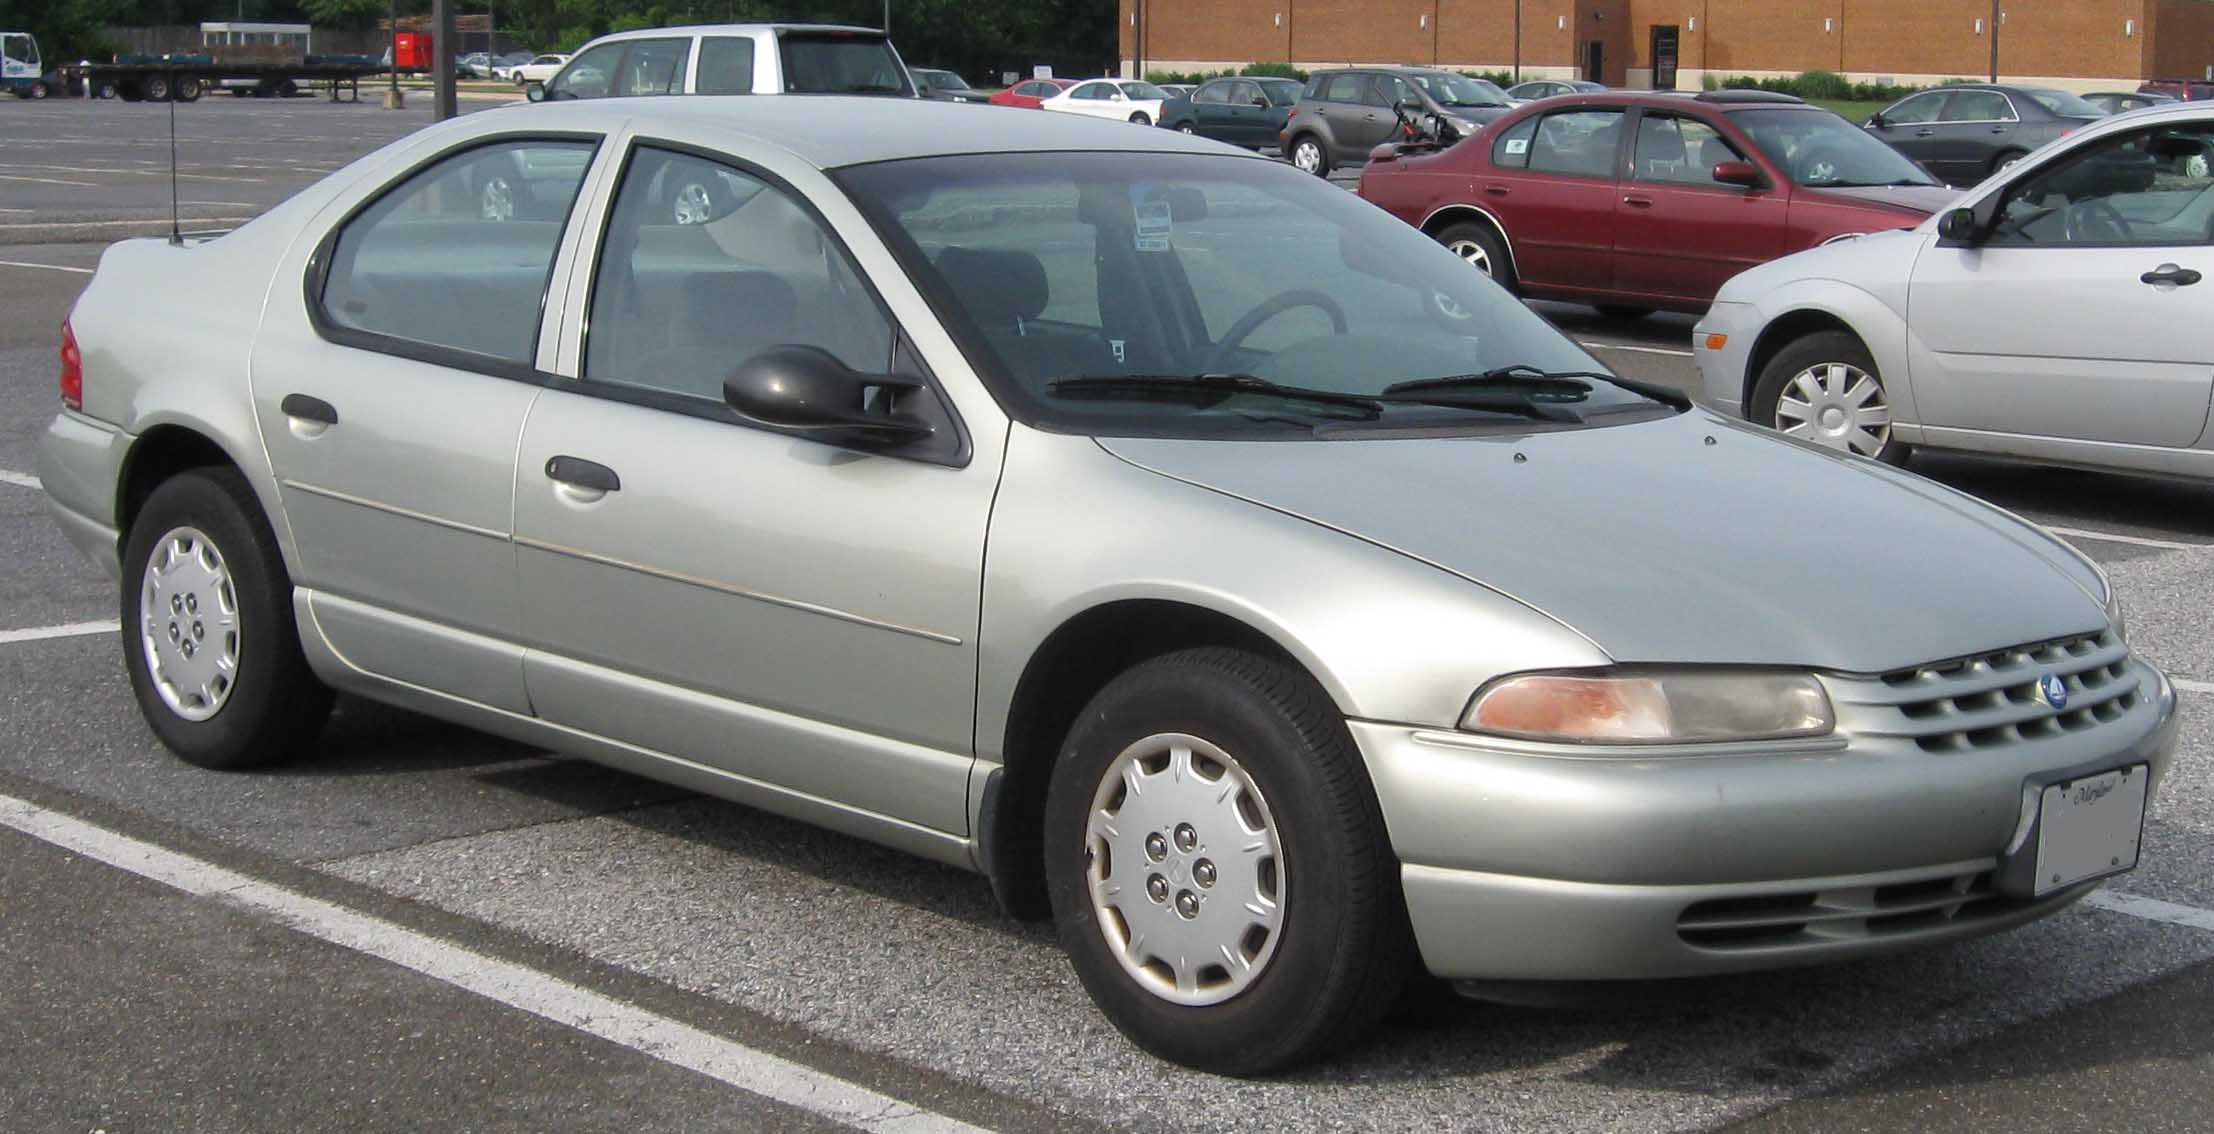 1997 Plymouth Breeze #2